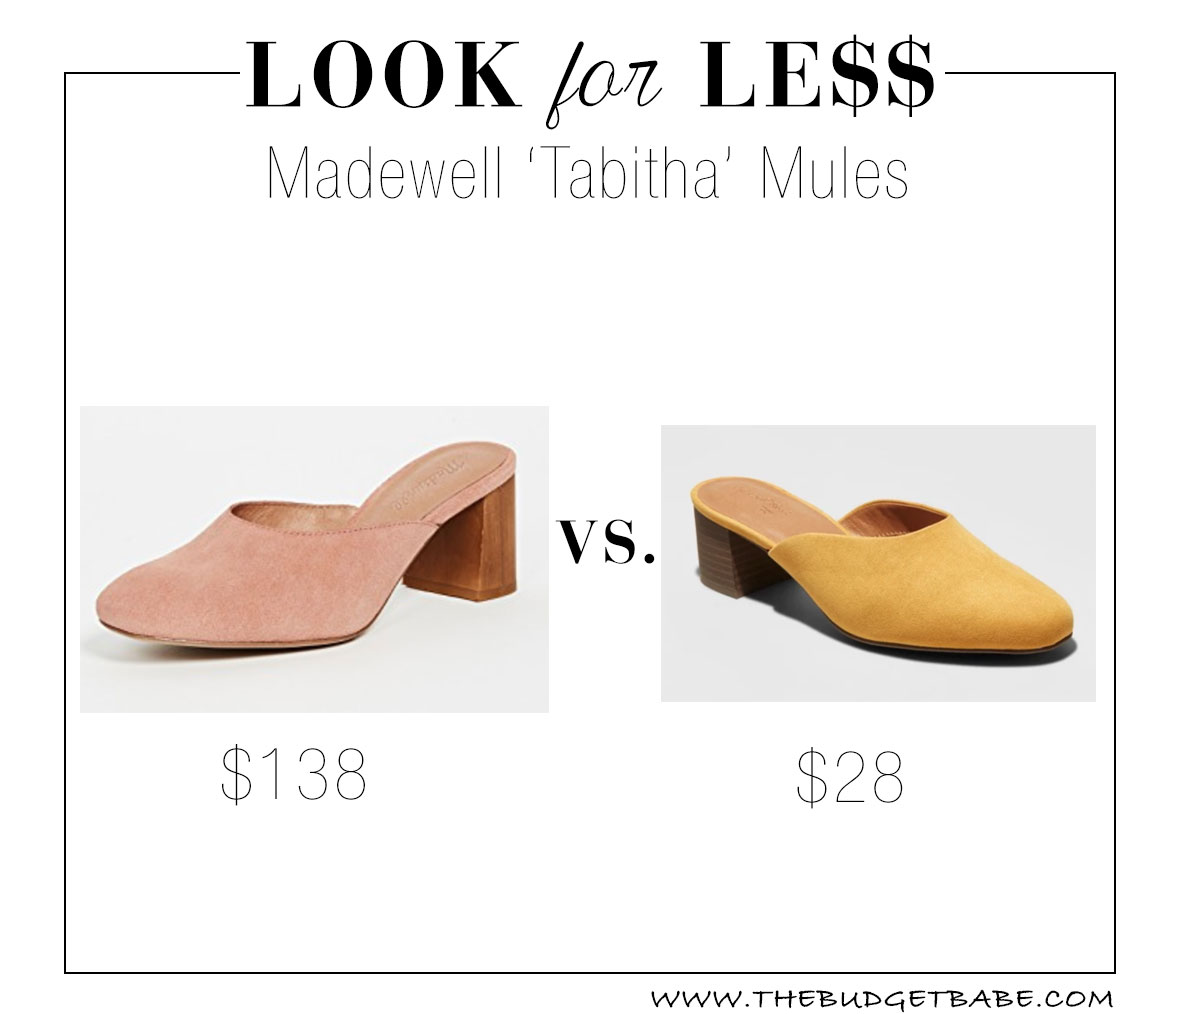 Madewell mules look for less